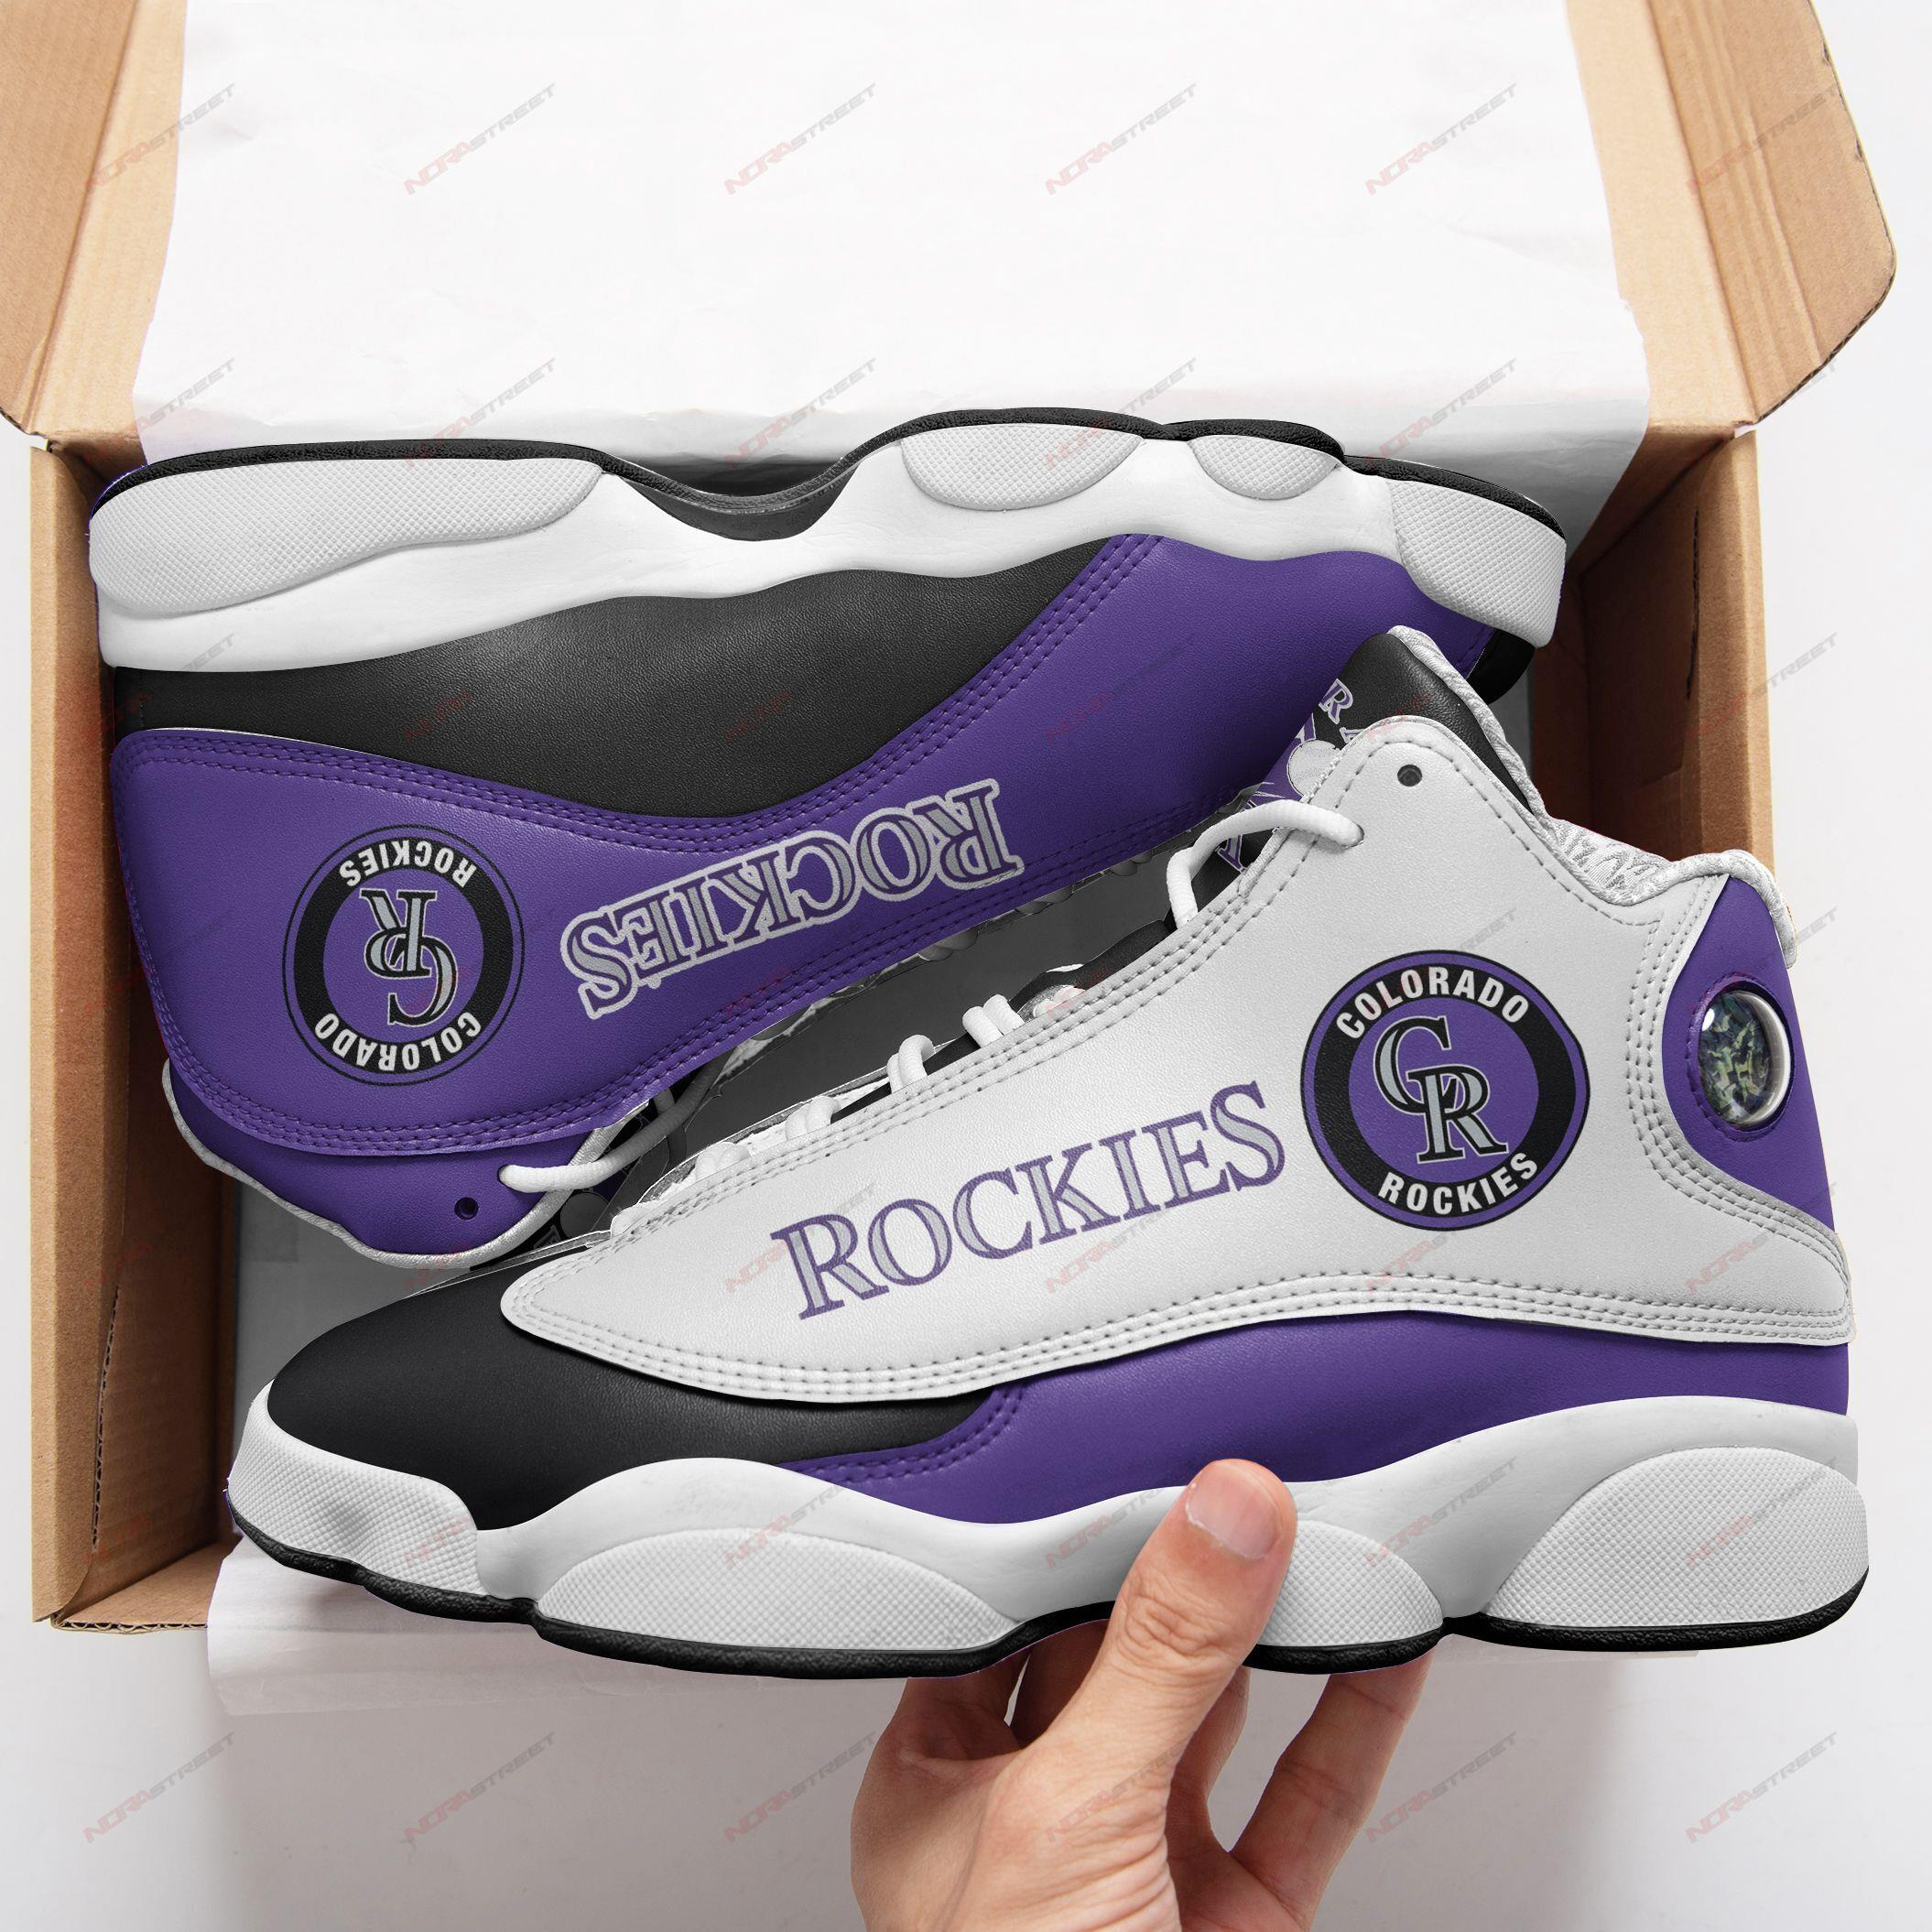 Colorado Rockies Air Jordan 13 Sneakers Sport Shoes Plus Size